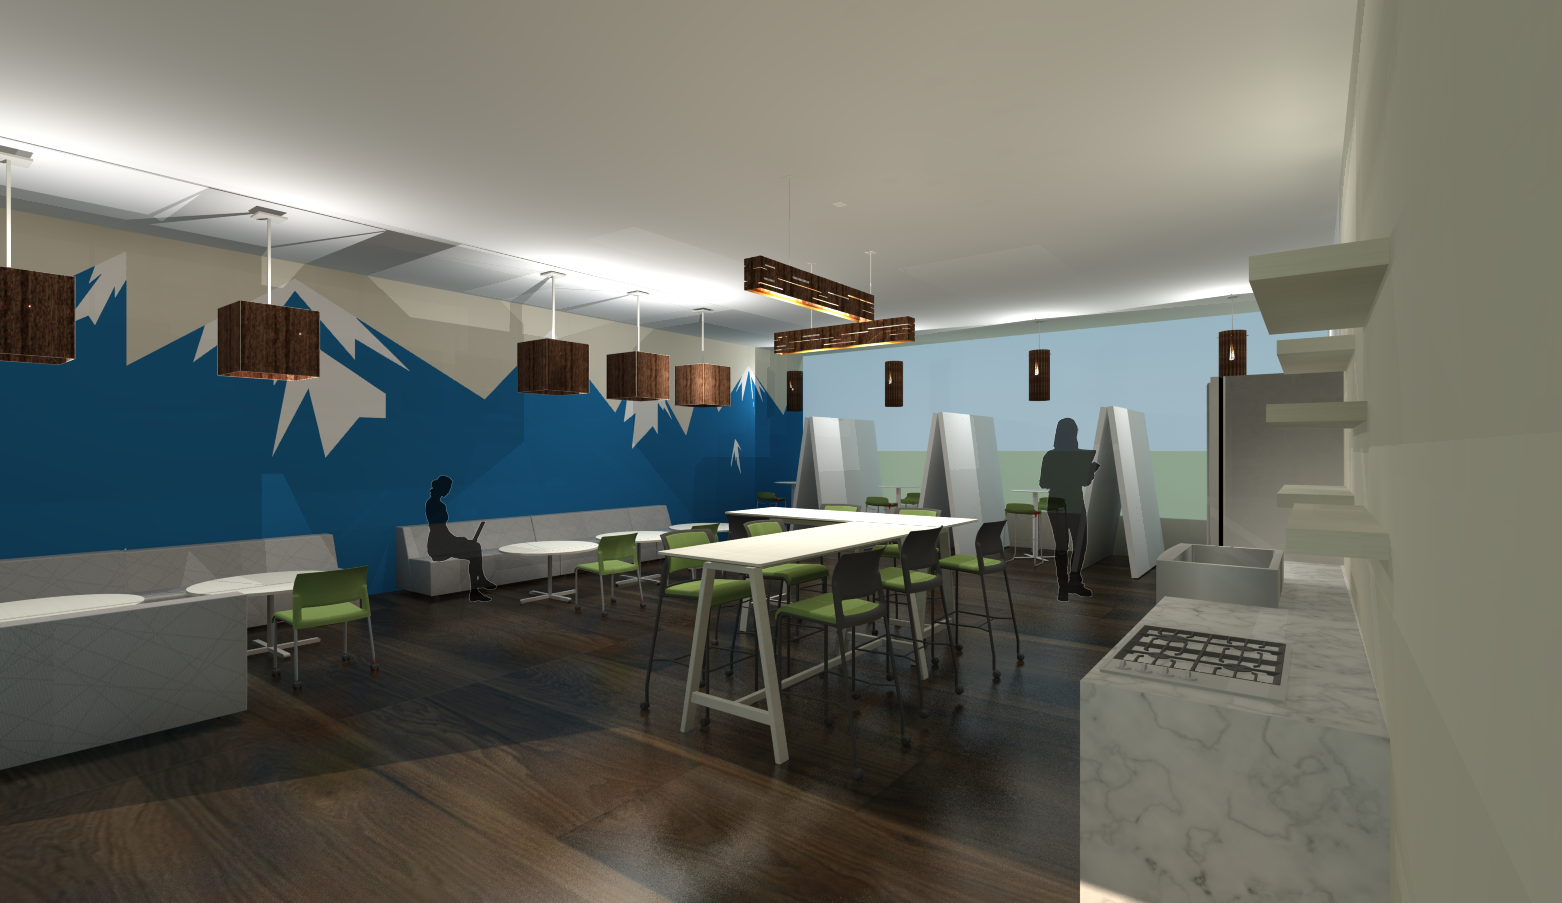 sustainable office furniture. Sketchup Rendering Of Kitchen \u0026 Meeting Space View #1 - Sustainable Office Design Project Furniture